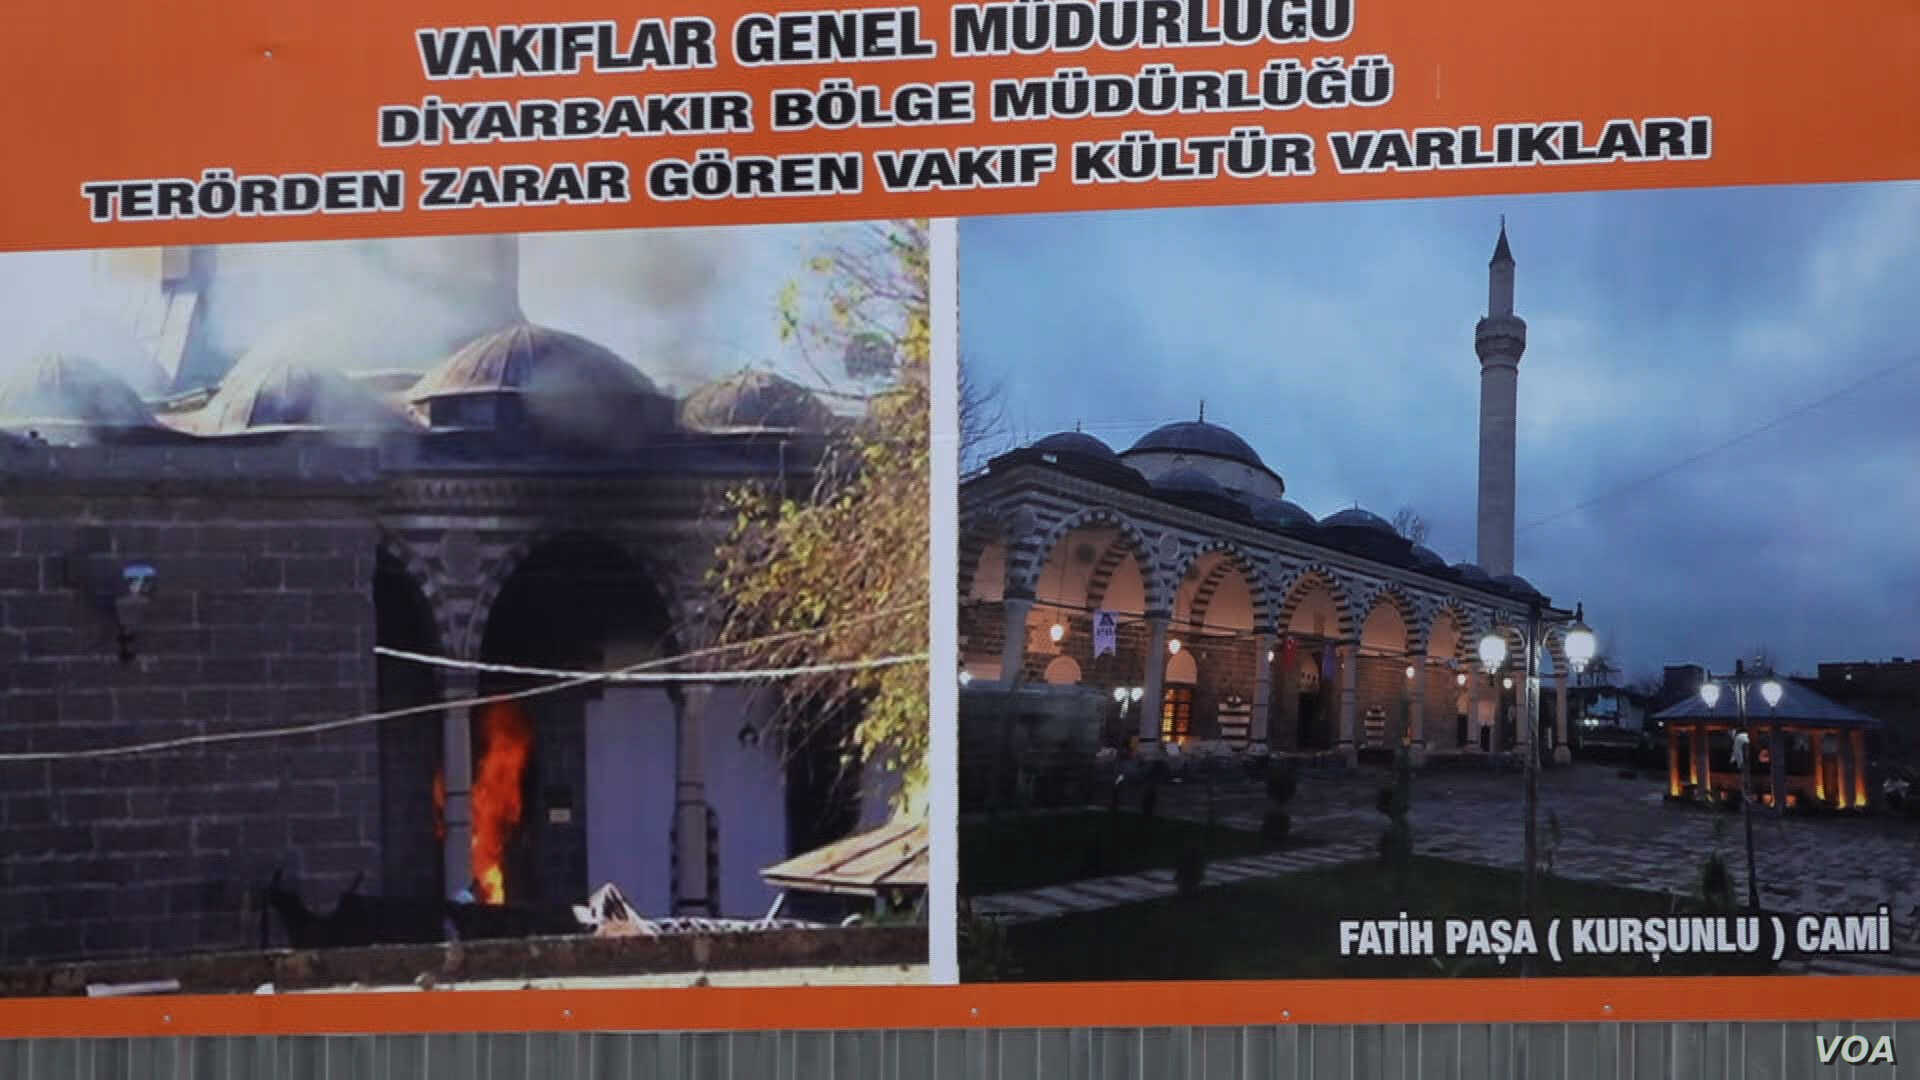 Posters by the AKP show the destruction caused by fighting with the PKK in Diyarbakir and how authorities are now rebuilding the city.